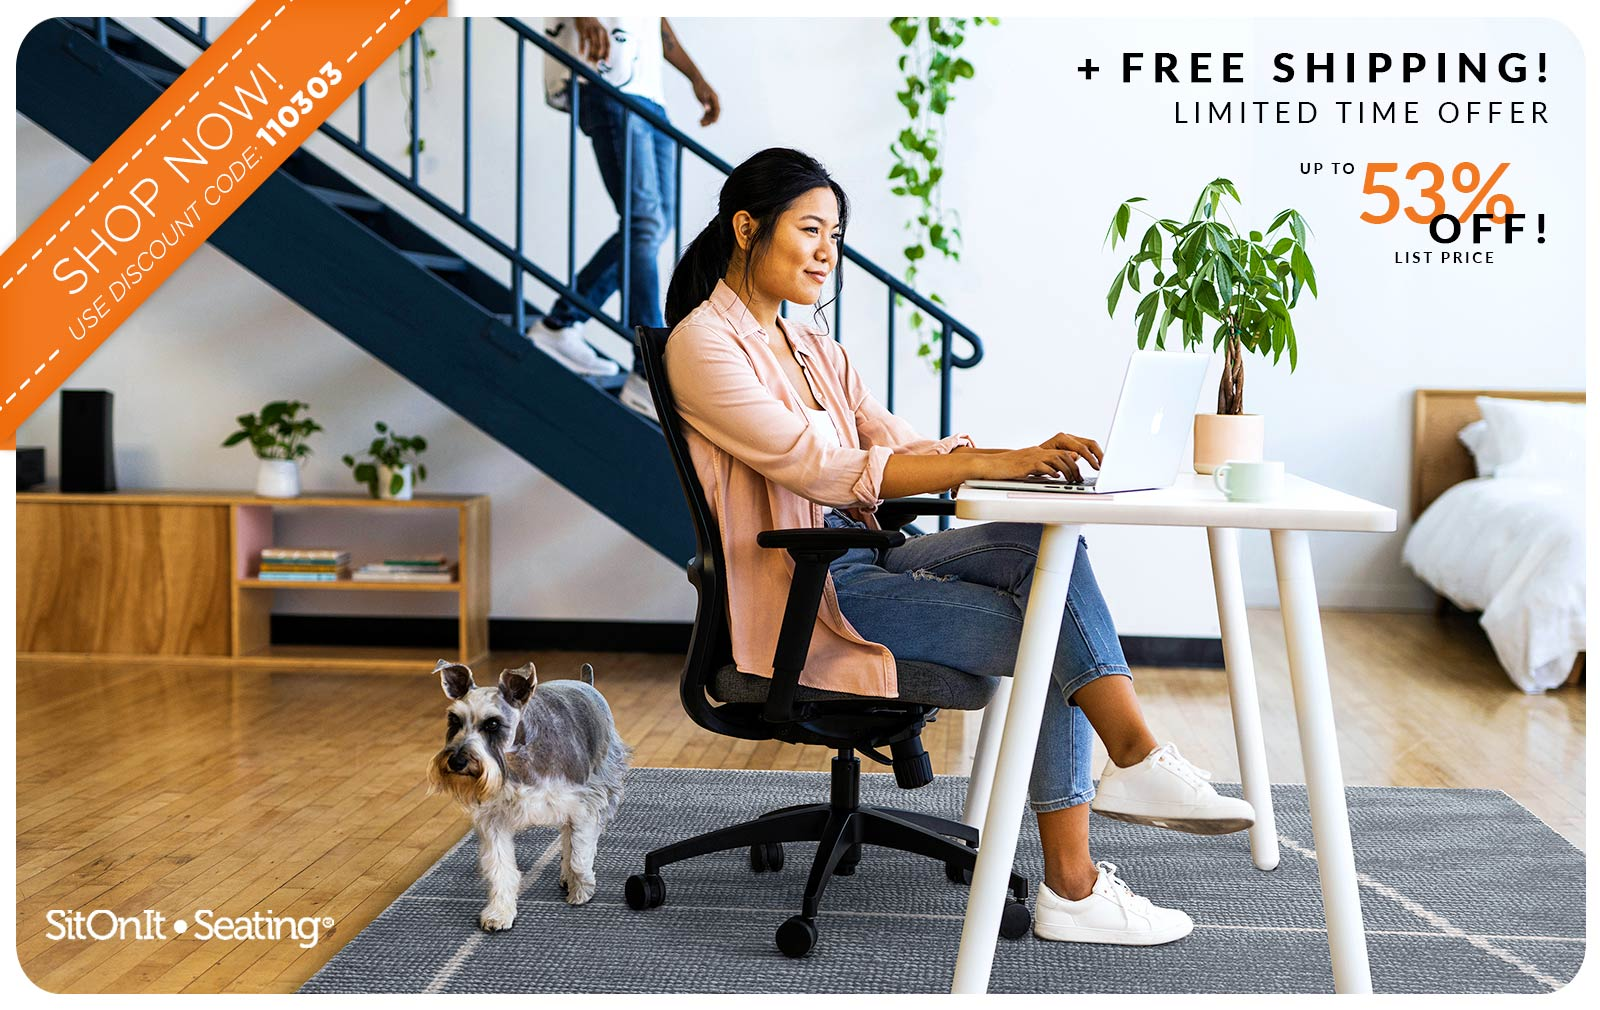 Work From Home SitOnIt Seating Deal